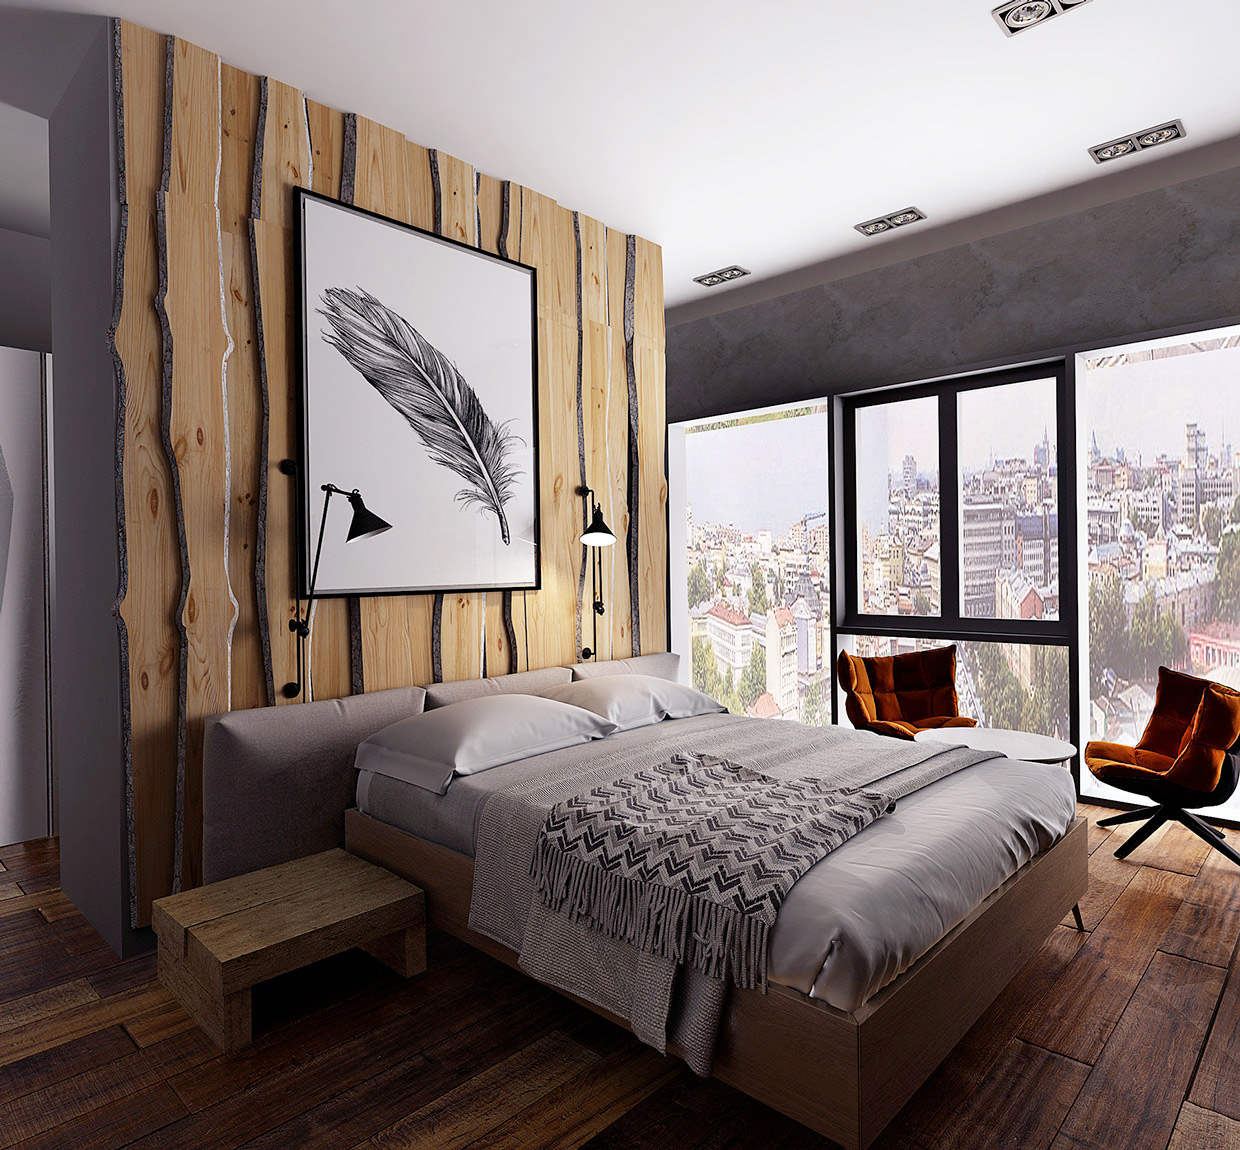 Image of: Rustic Contemporary Bedroom